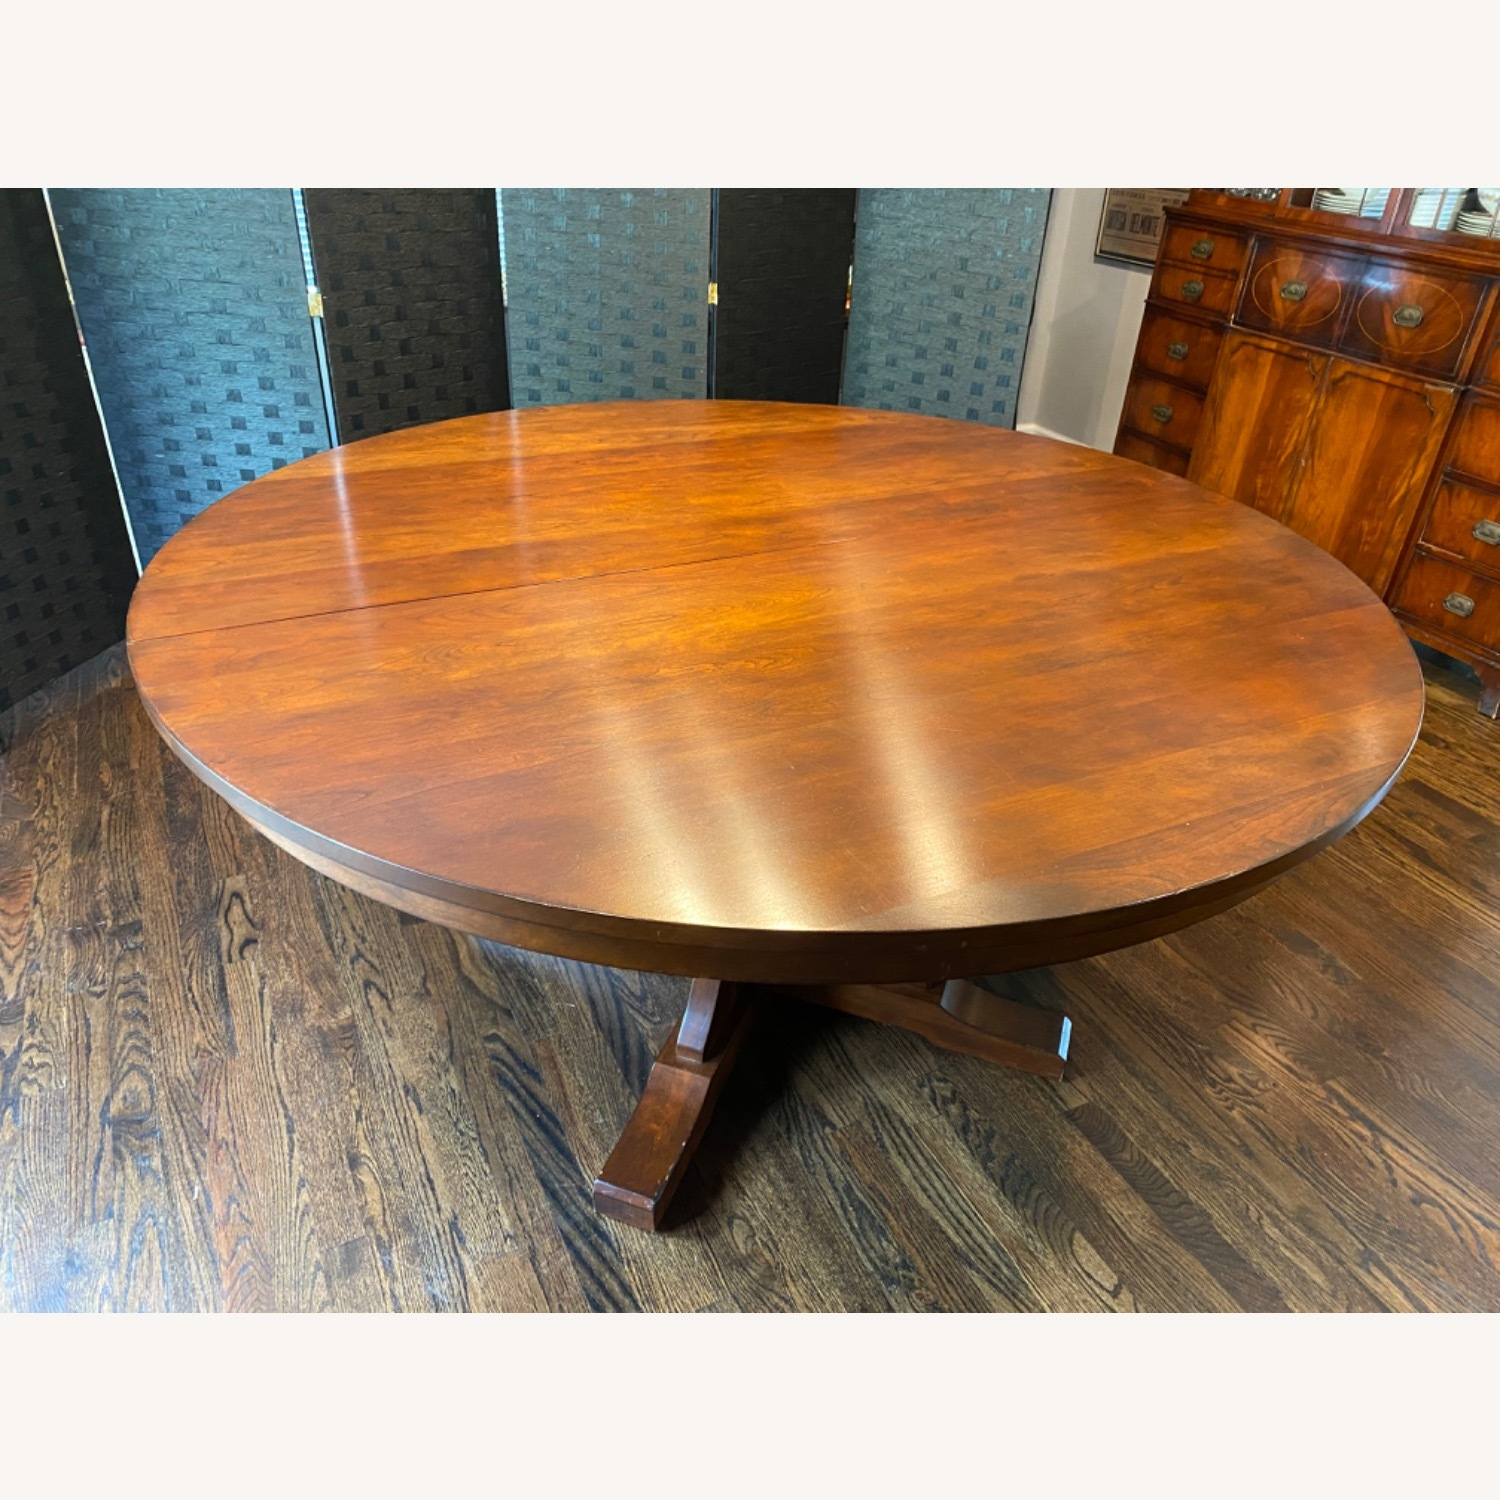 Stickley Round Dining Table with 3 Leaves - image-3